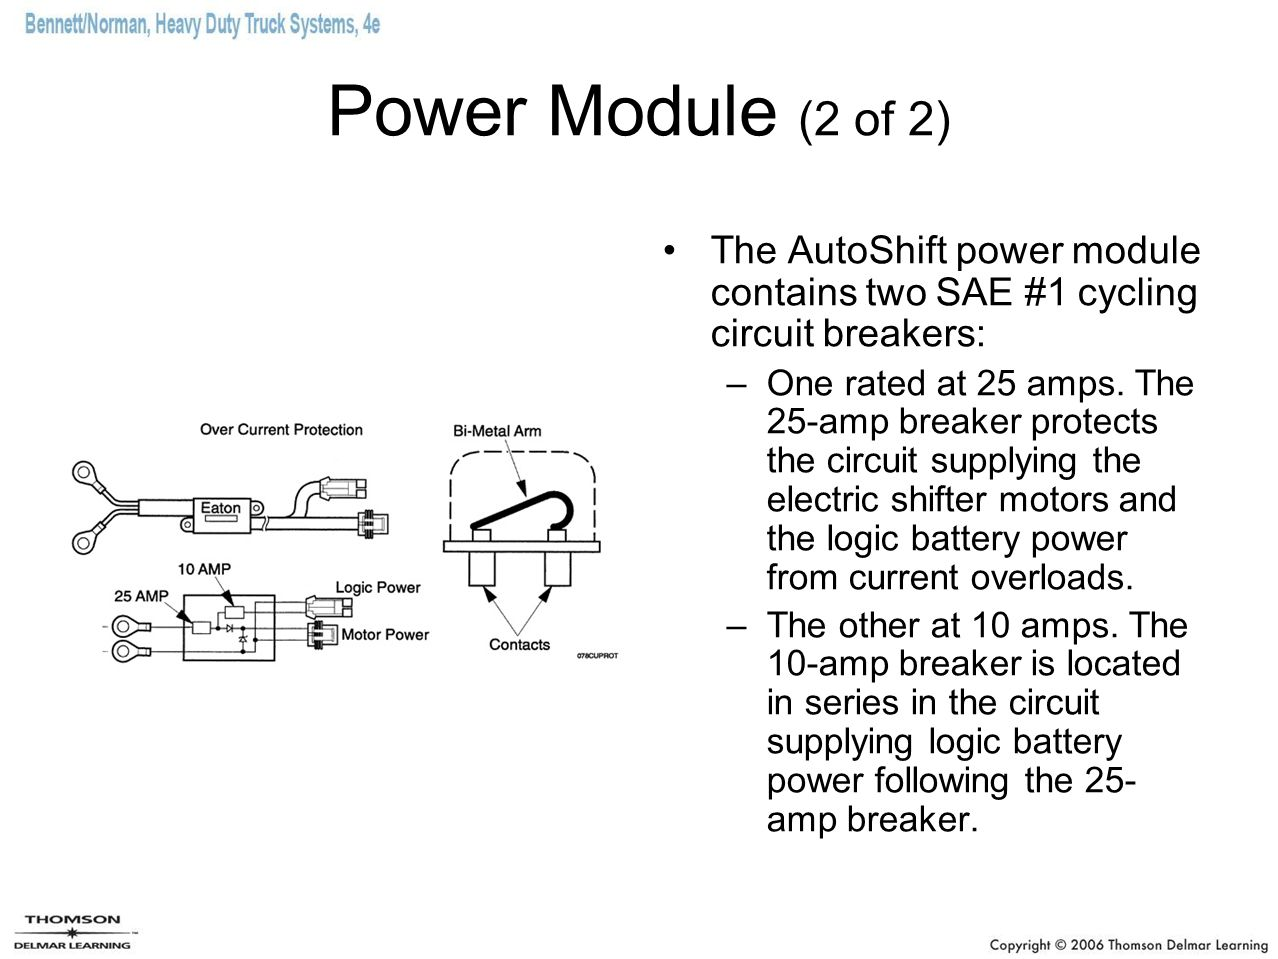 Power Module (2 of 2) The AutoShift power module contains two SAE #1 cycling circuit breakers: